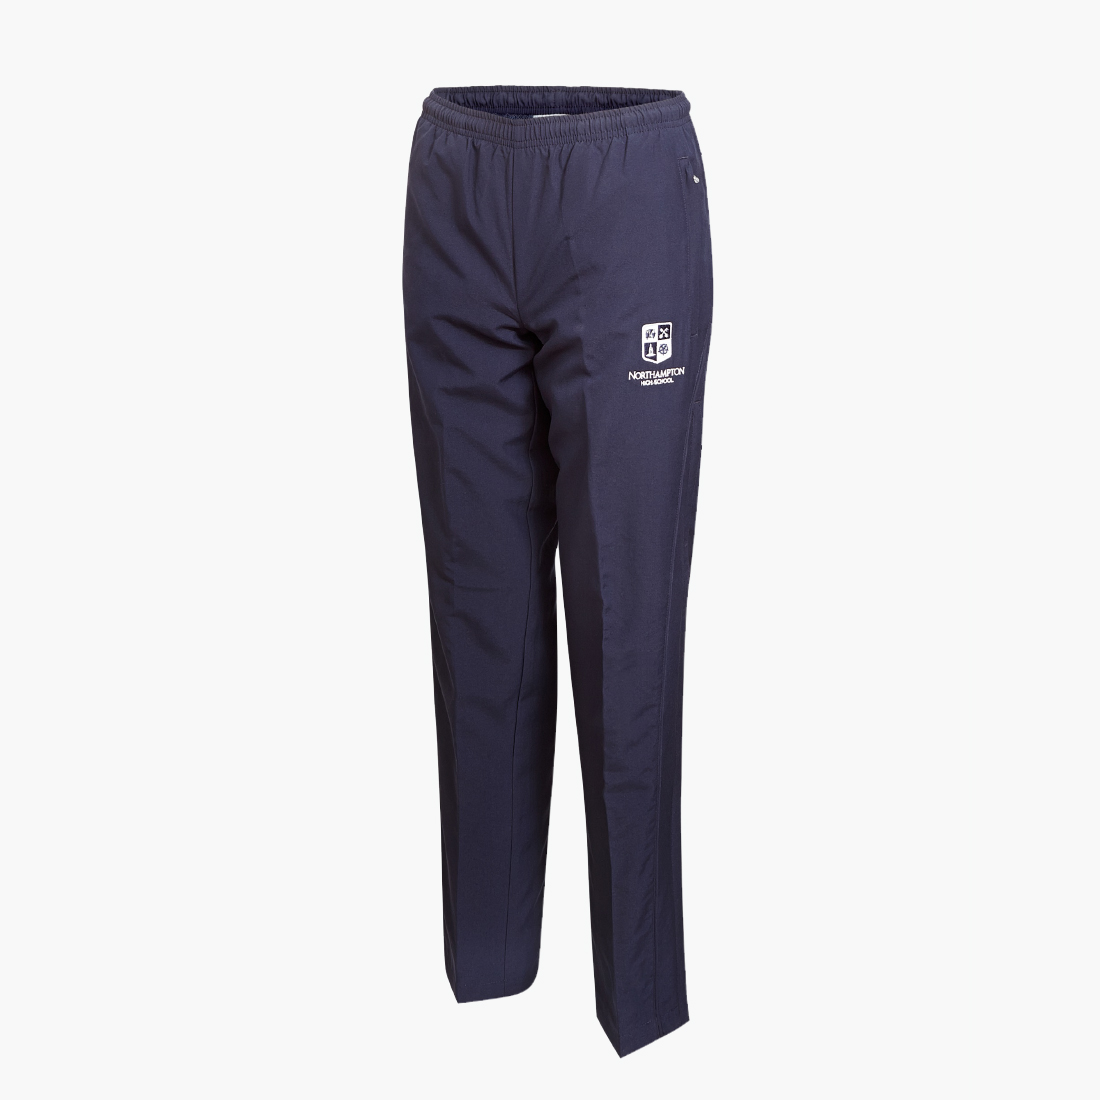 PERFORMATEX TRACKSUIT BOTTOMS